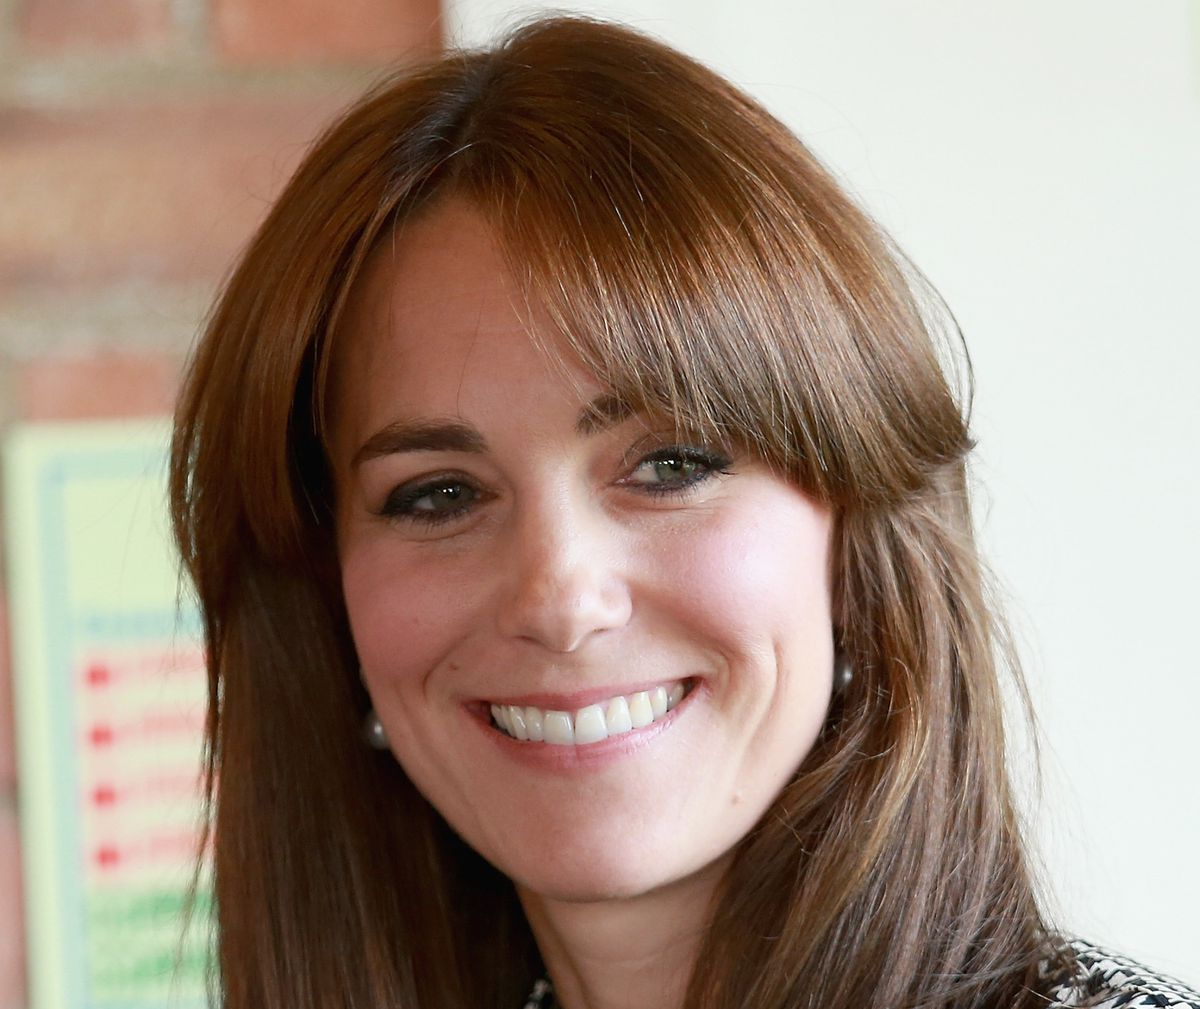 curly haircuts with bangs a closer look at kate middleton s new bangs racked 1668 | GettyImages 488731036.0